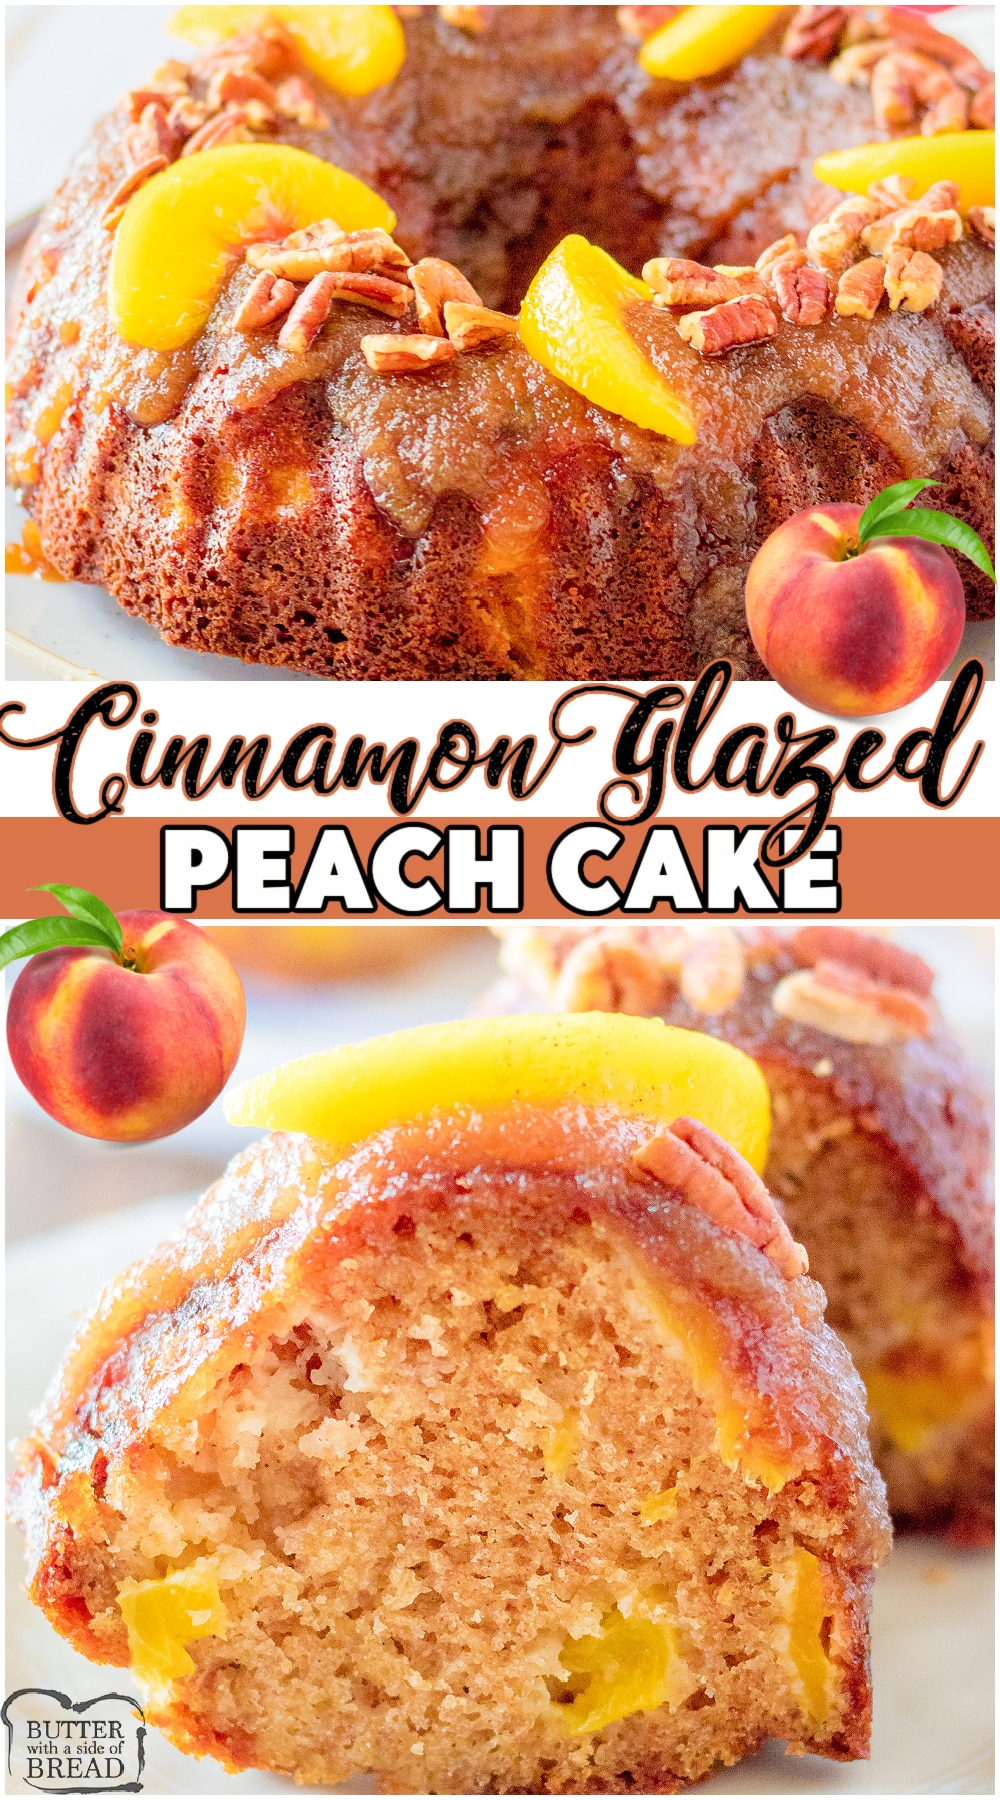 Peach Cake with Cinnamon glaze topping made with classic ingredients, including fresh peaches! Lovely spiced cake with chunks of flavorful peaches with a fabulous cinnamon topping. Great way to use fresh peaches! #cake #peach #baking #peaches #easyrecipe from BUTTER WITH A SIDE OF BREAD